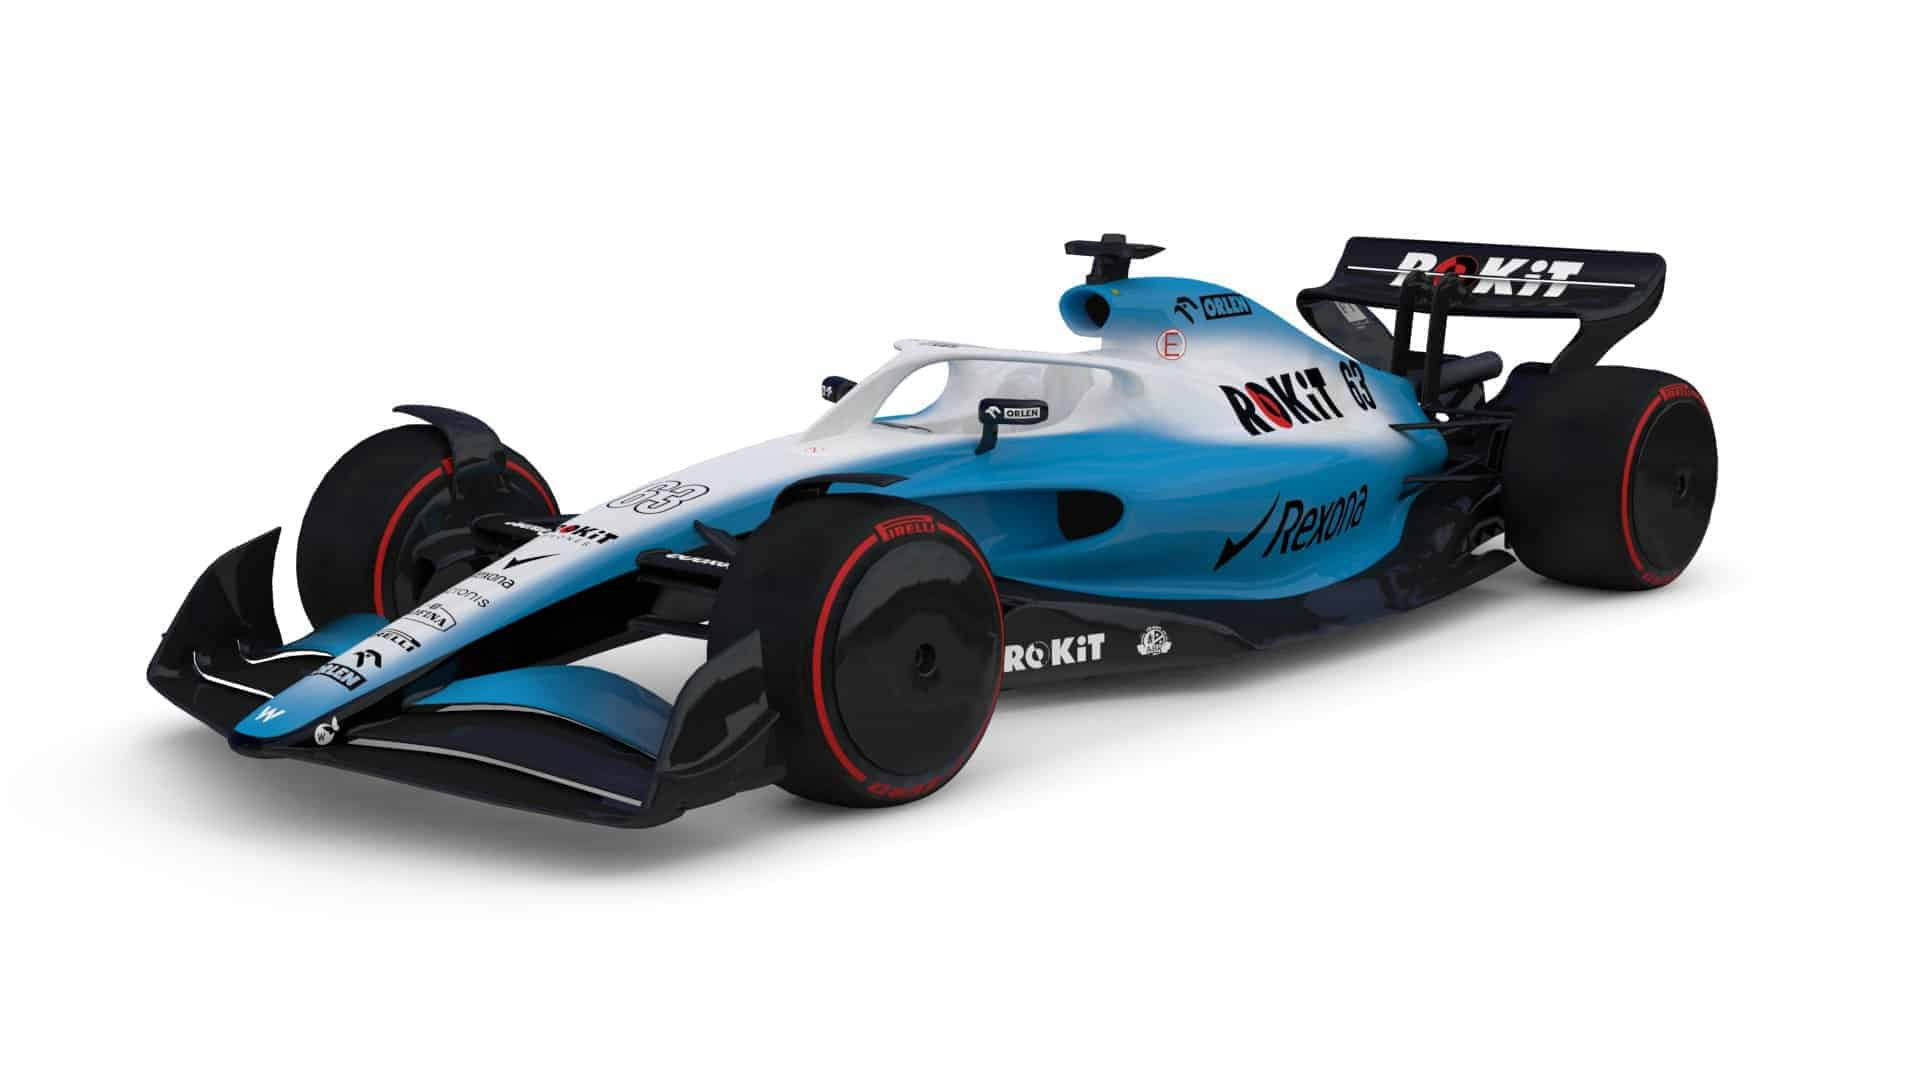 Williams F1 2021 render F1 Concept October 31st Photo Williams Twitter